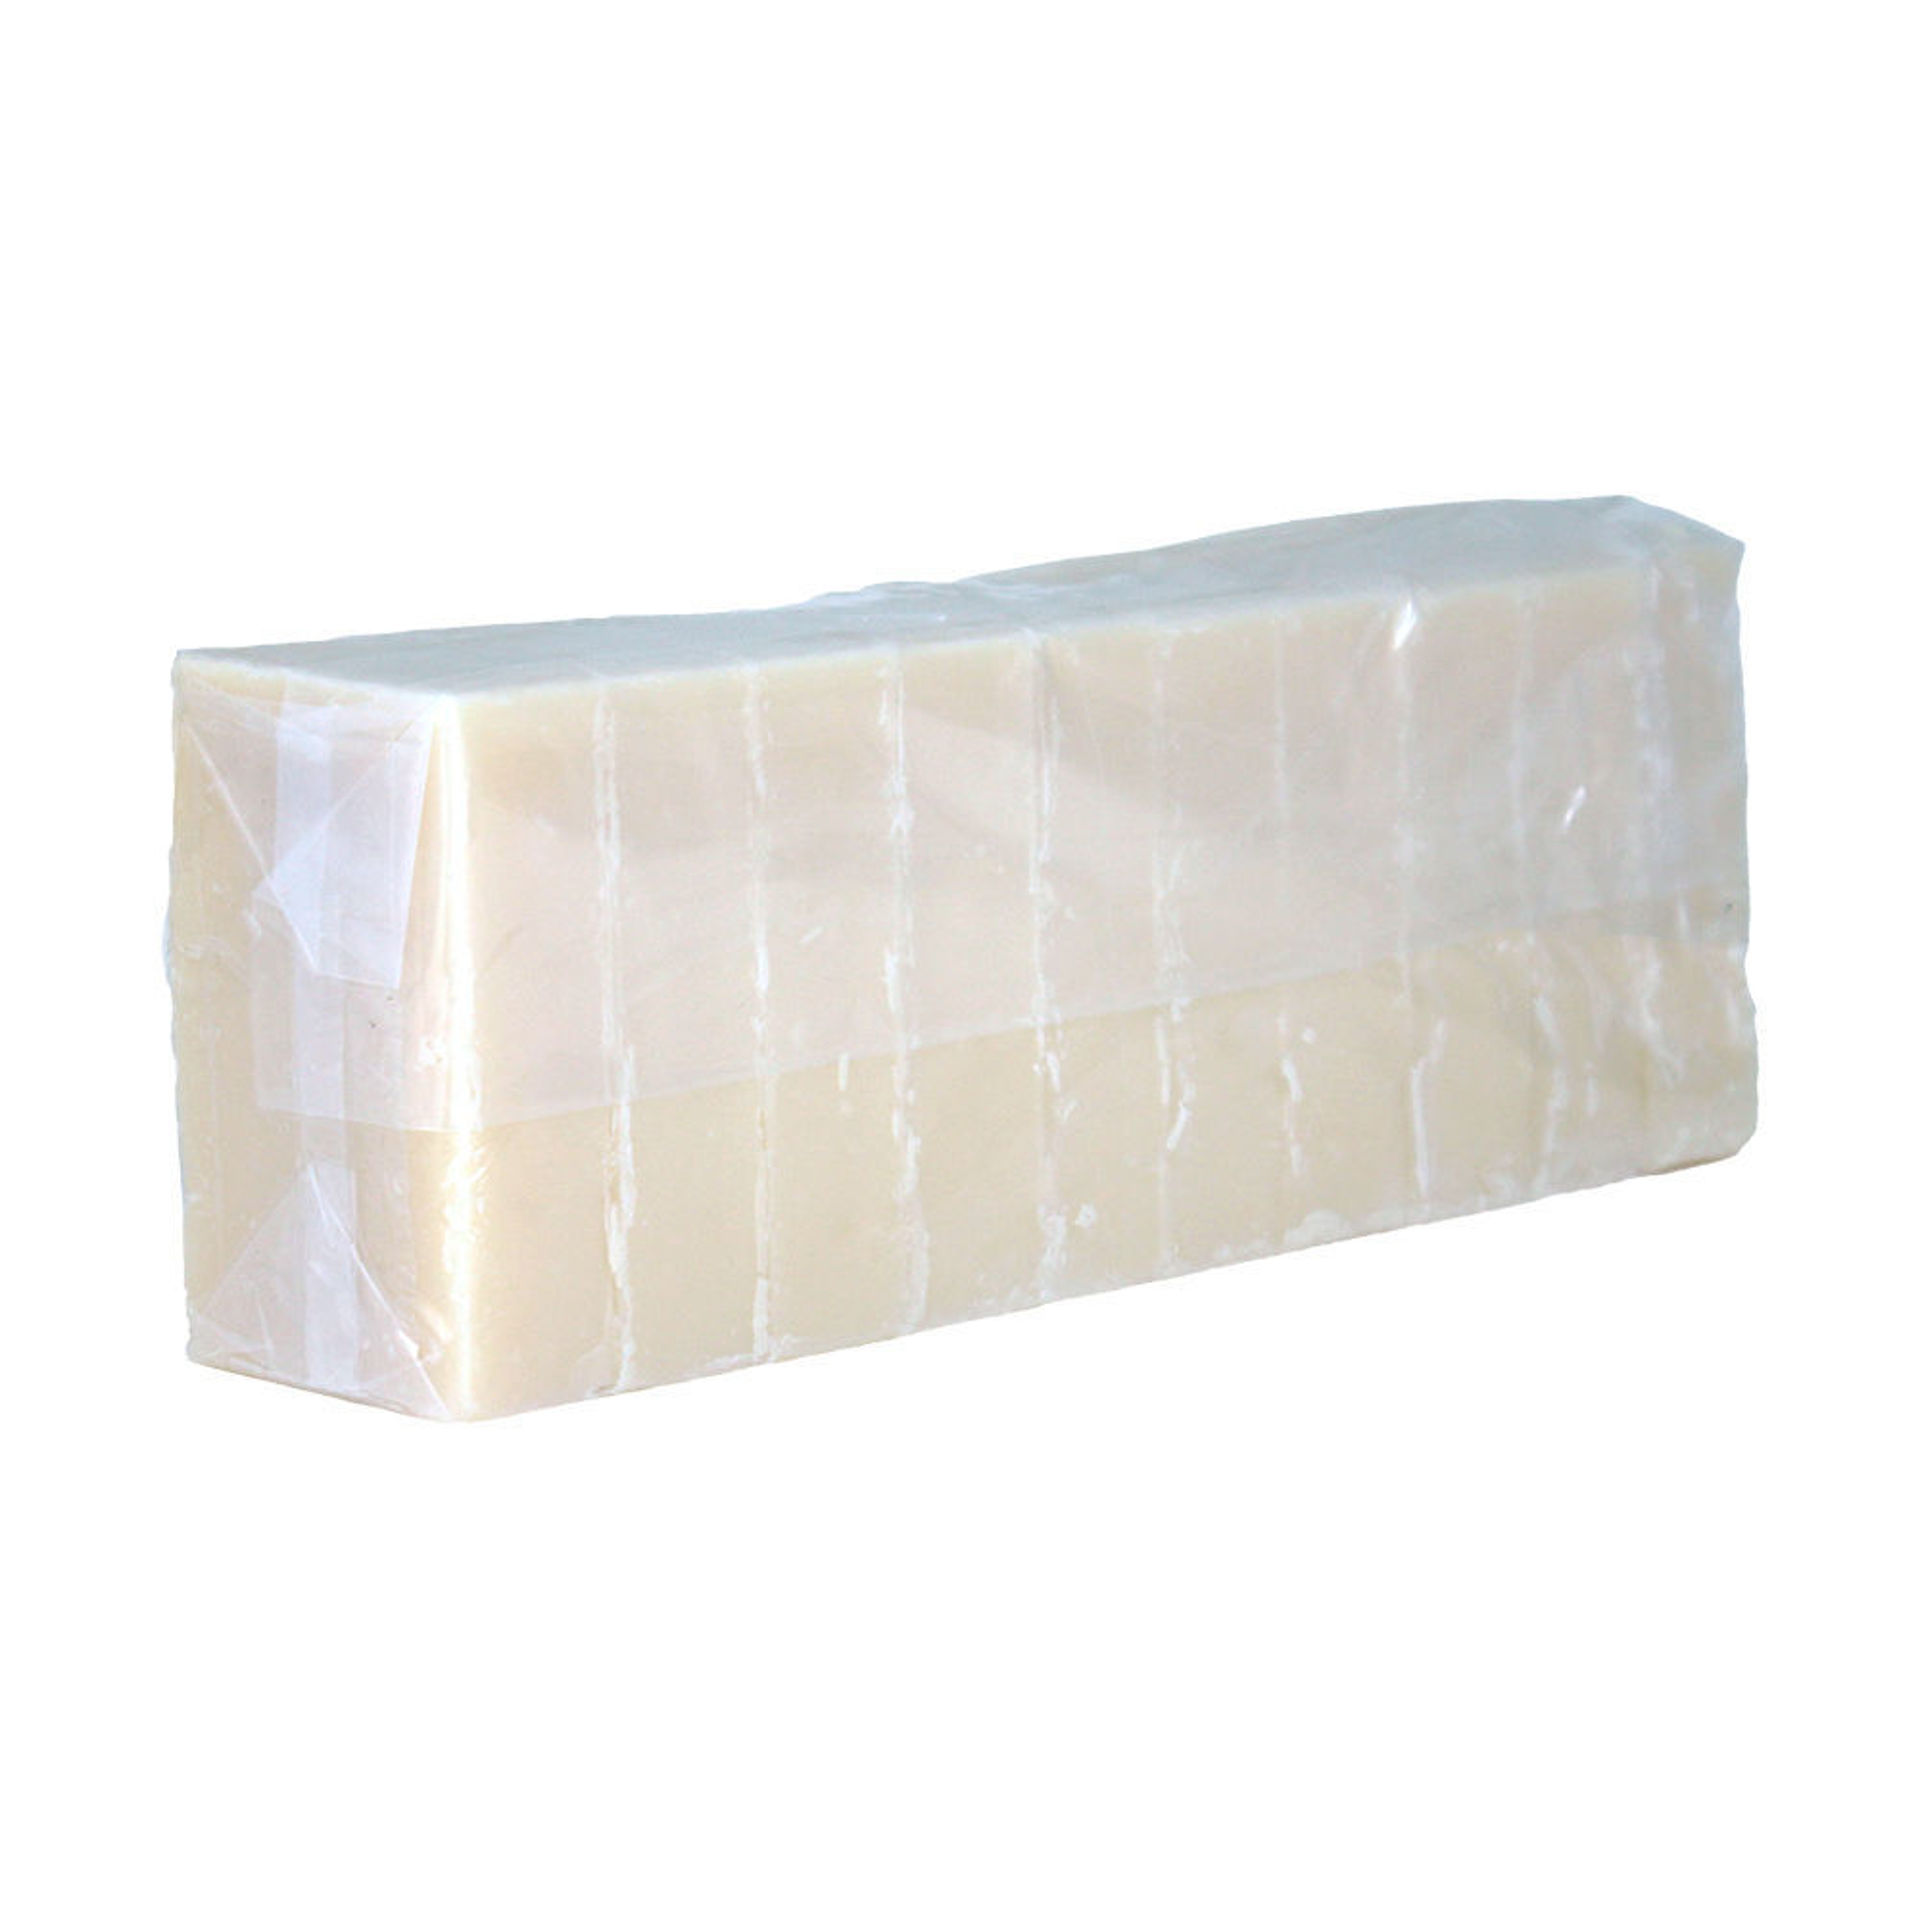 Picture of Soap Loaf (10 Bars) - Egyptian Musk